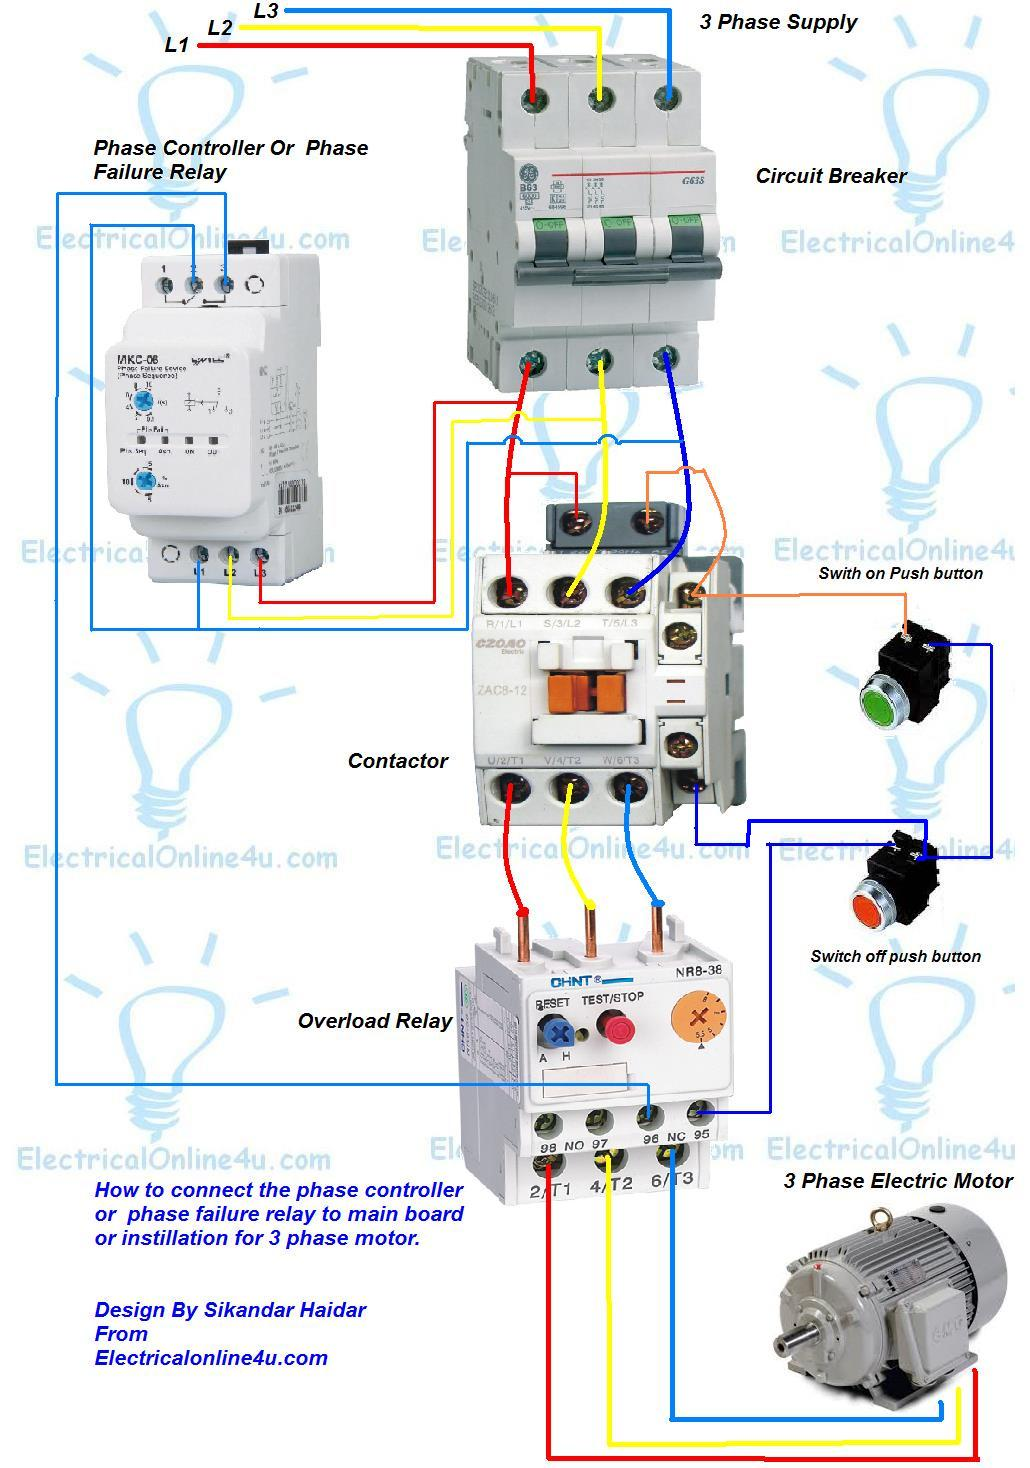 Phase%2Bfailure%2Brelay%2B %2Bphase%2Bcontroller%2Binstilaion%2Bin%2B3%2Bphase%2BMain%2Bboard%2Bor%2Bfor%2B3%2Bphase%2Bmotor phase controller wiring phase failure relay diagram electrical electrical relay wiring diagram at fashall.co